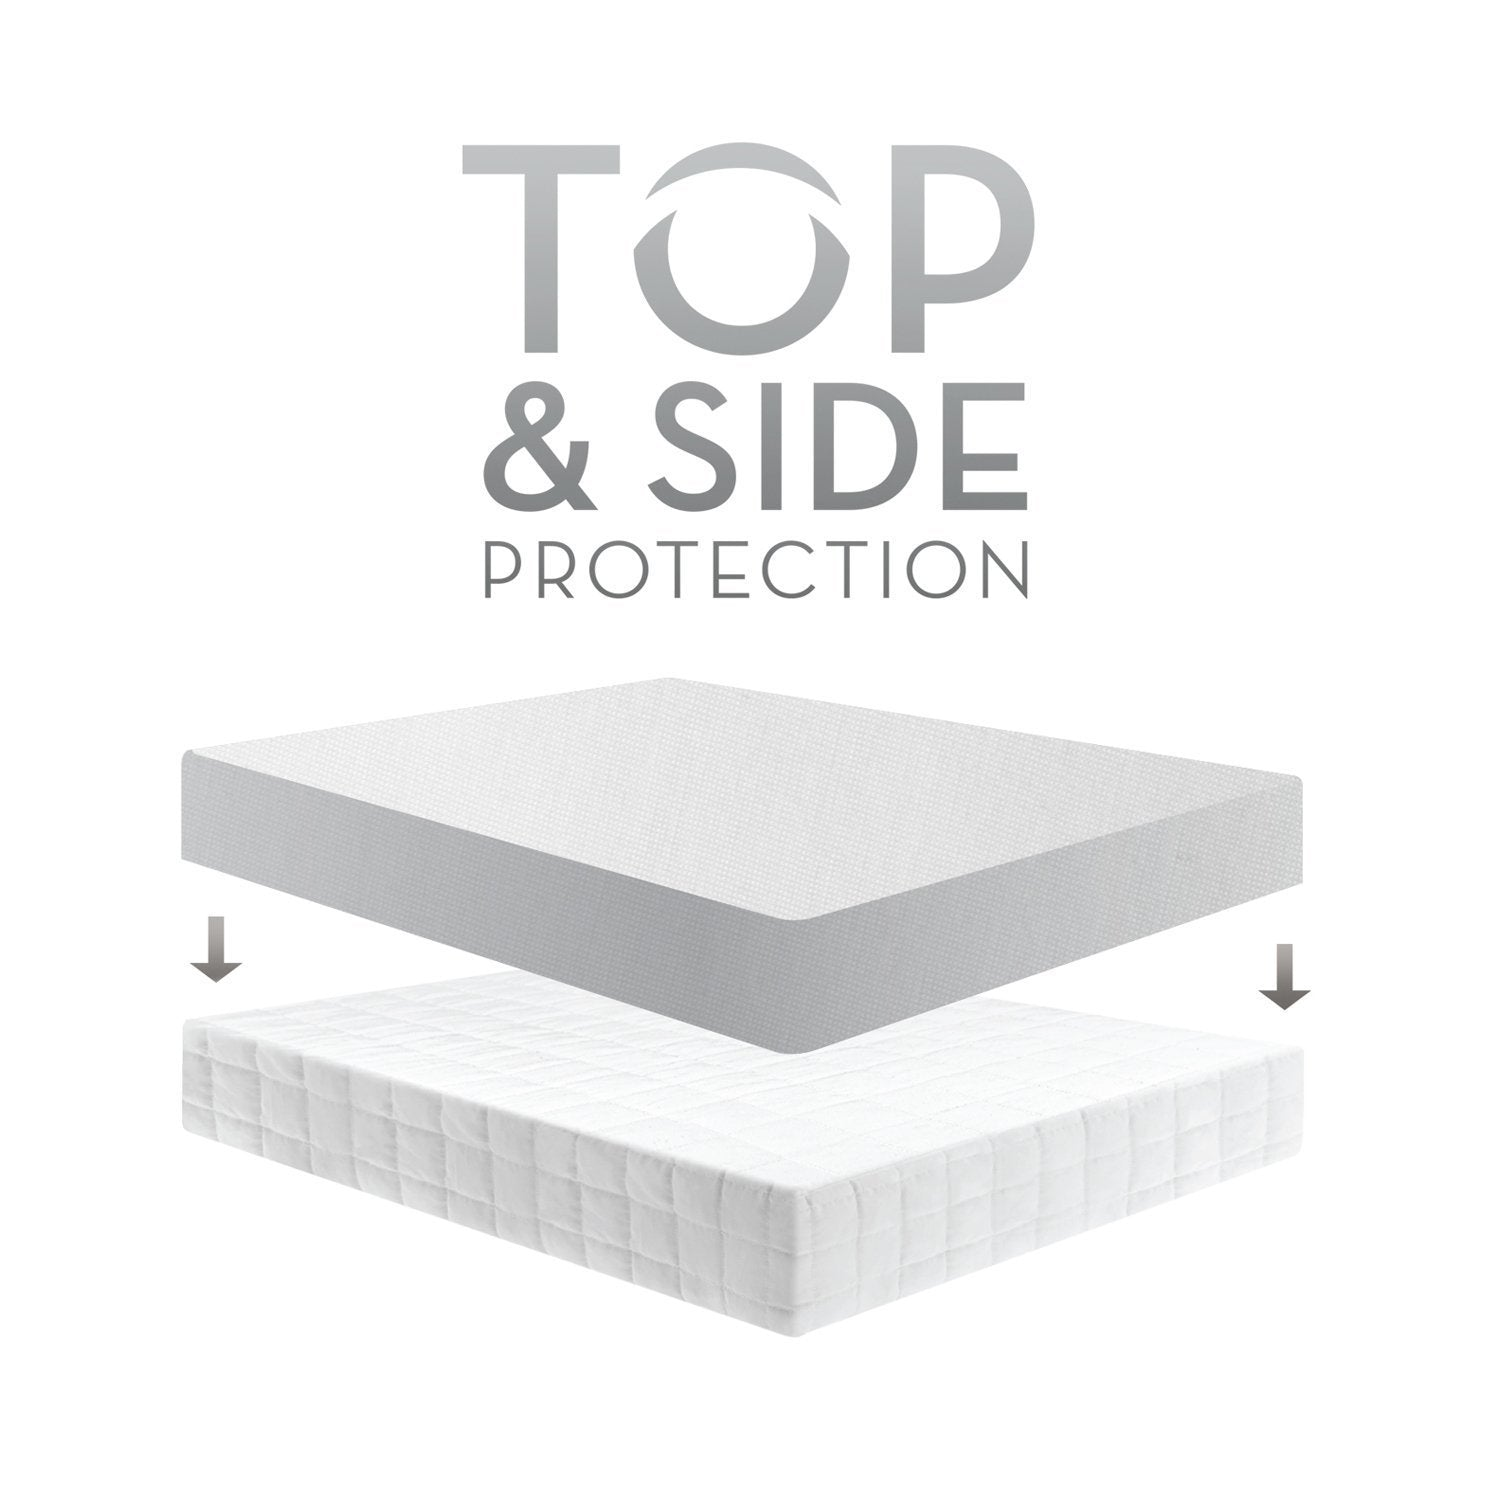 SLEEP TITE FIVE 5IDED® Smooth Mattress Protector